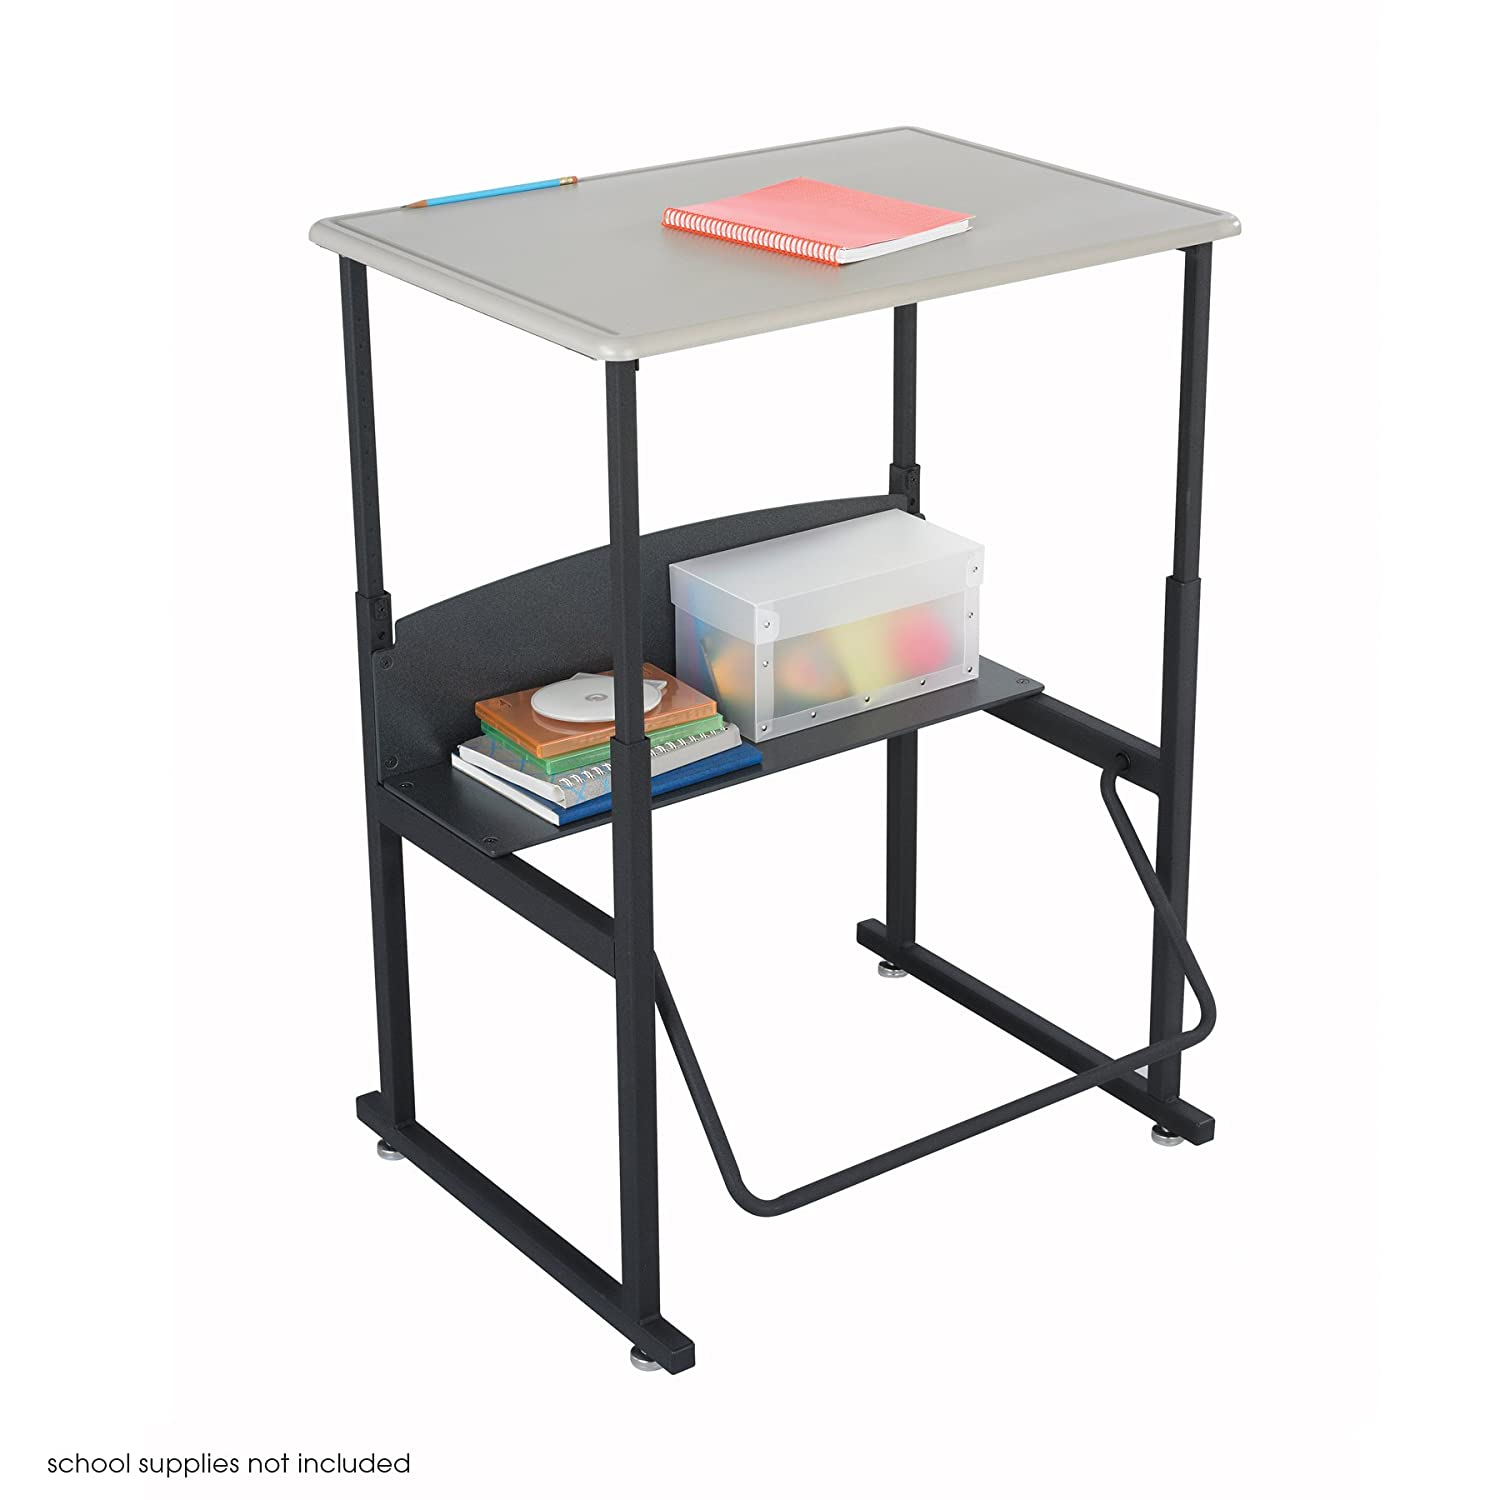 catalog desk m tables id s angled manual desks adjustable student category view base